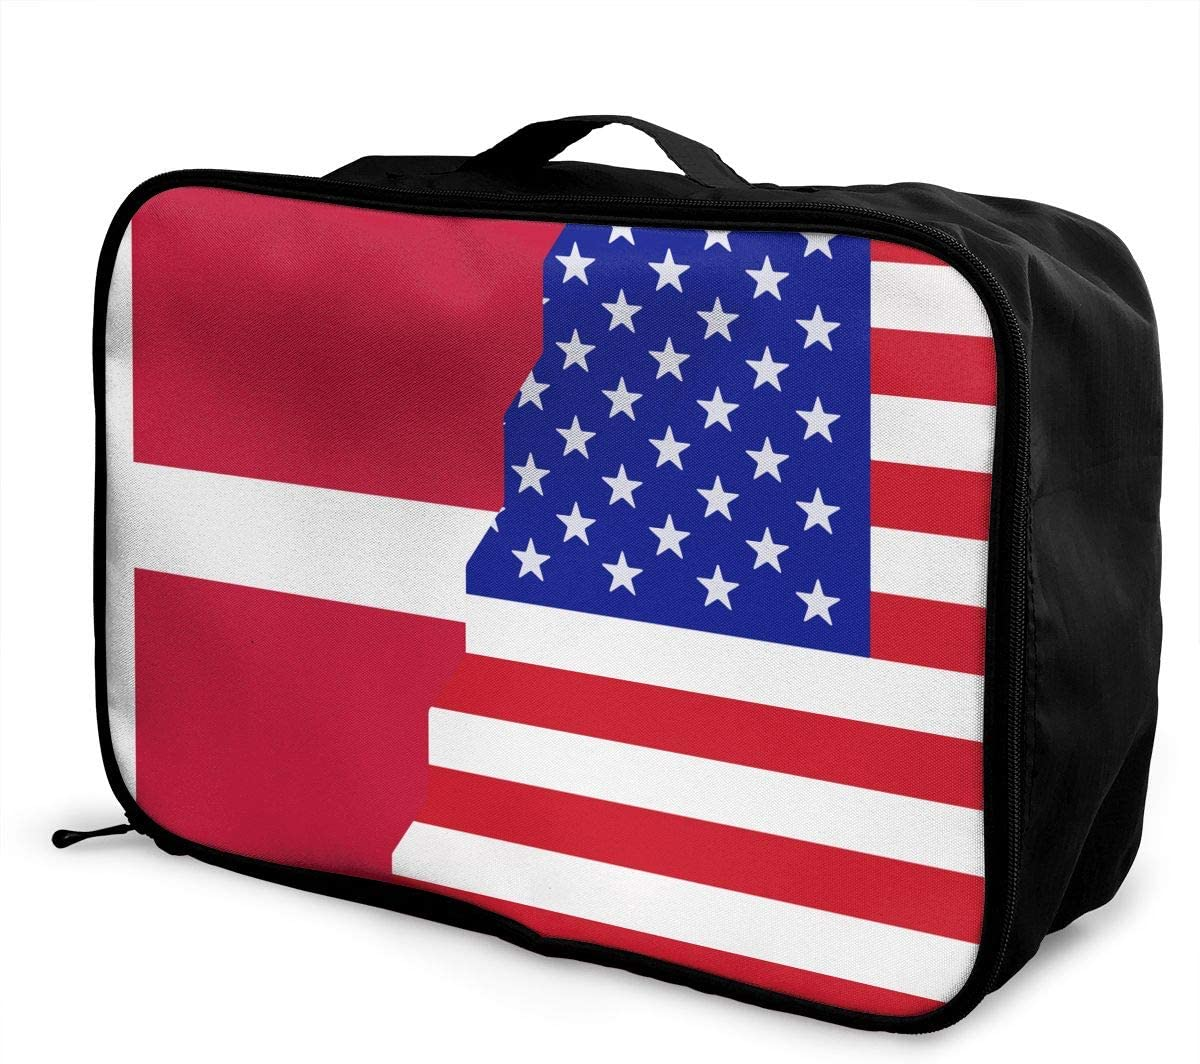 Denmark American Flag Overnight Carry On Luggage Waterproof Fashion Travel Bag Lightweight Suitcases